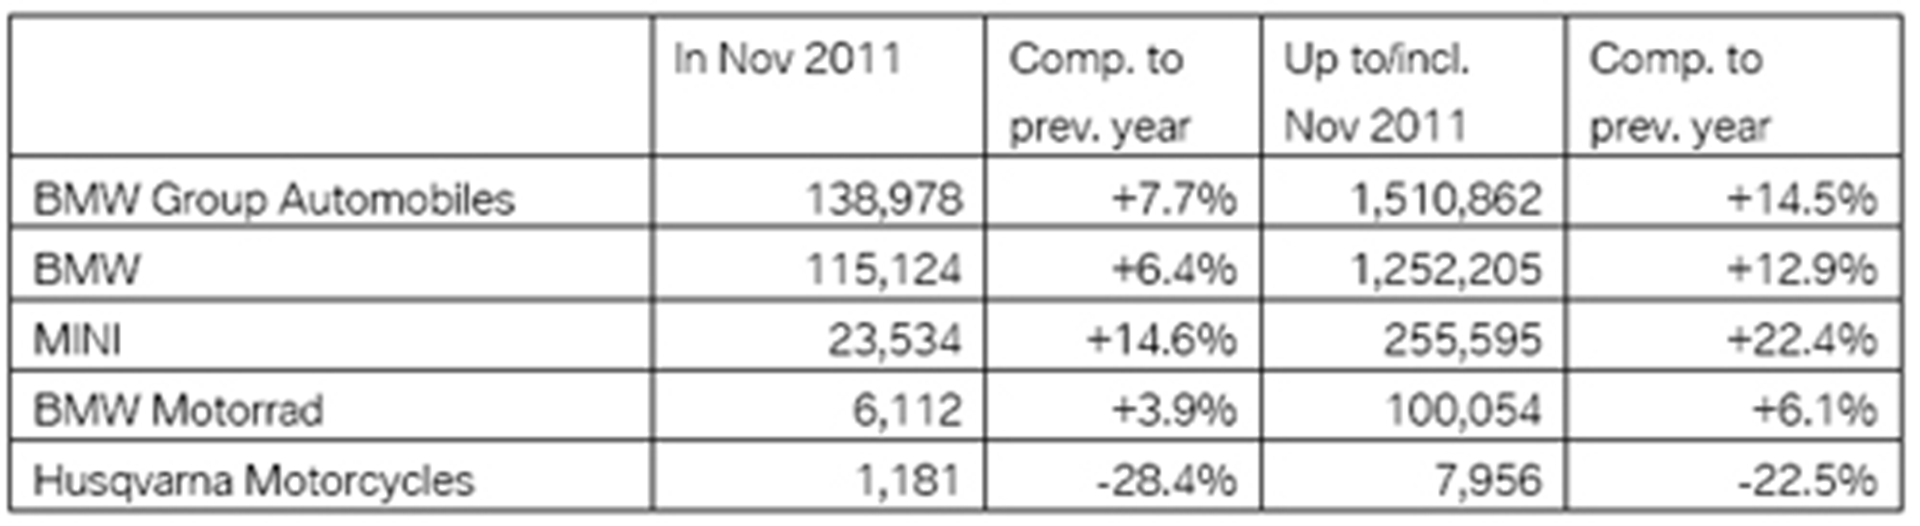 BMW Group sales in/up to November 2011 at a glance